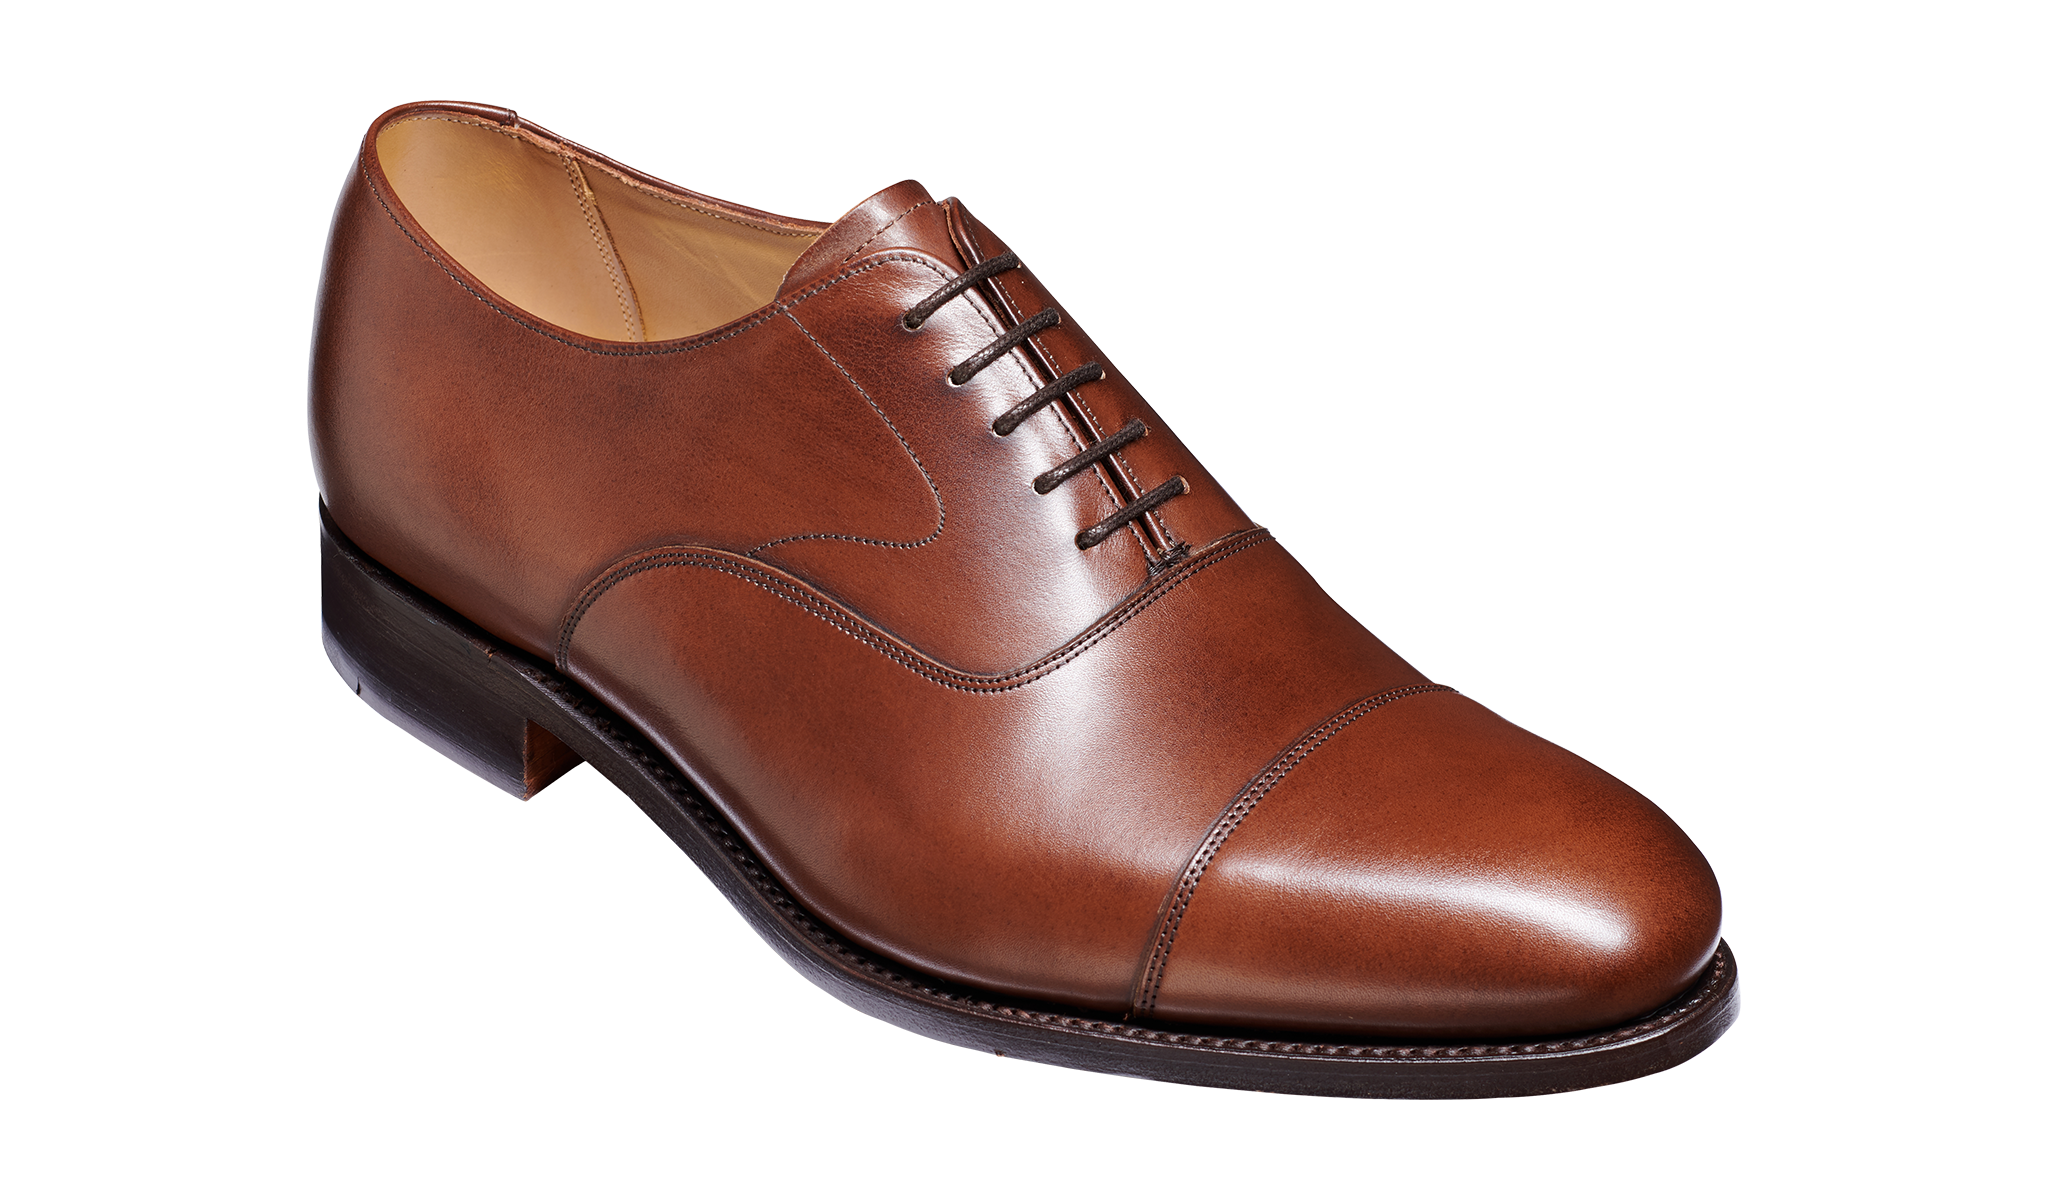 Malvern - Man's Handmade Brown Leather Oxford Shoes From Barker